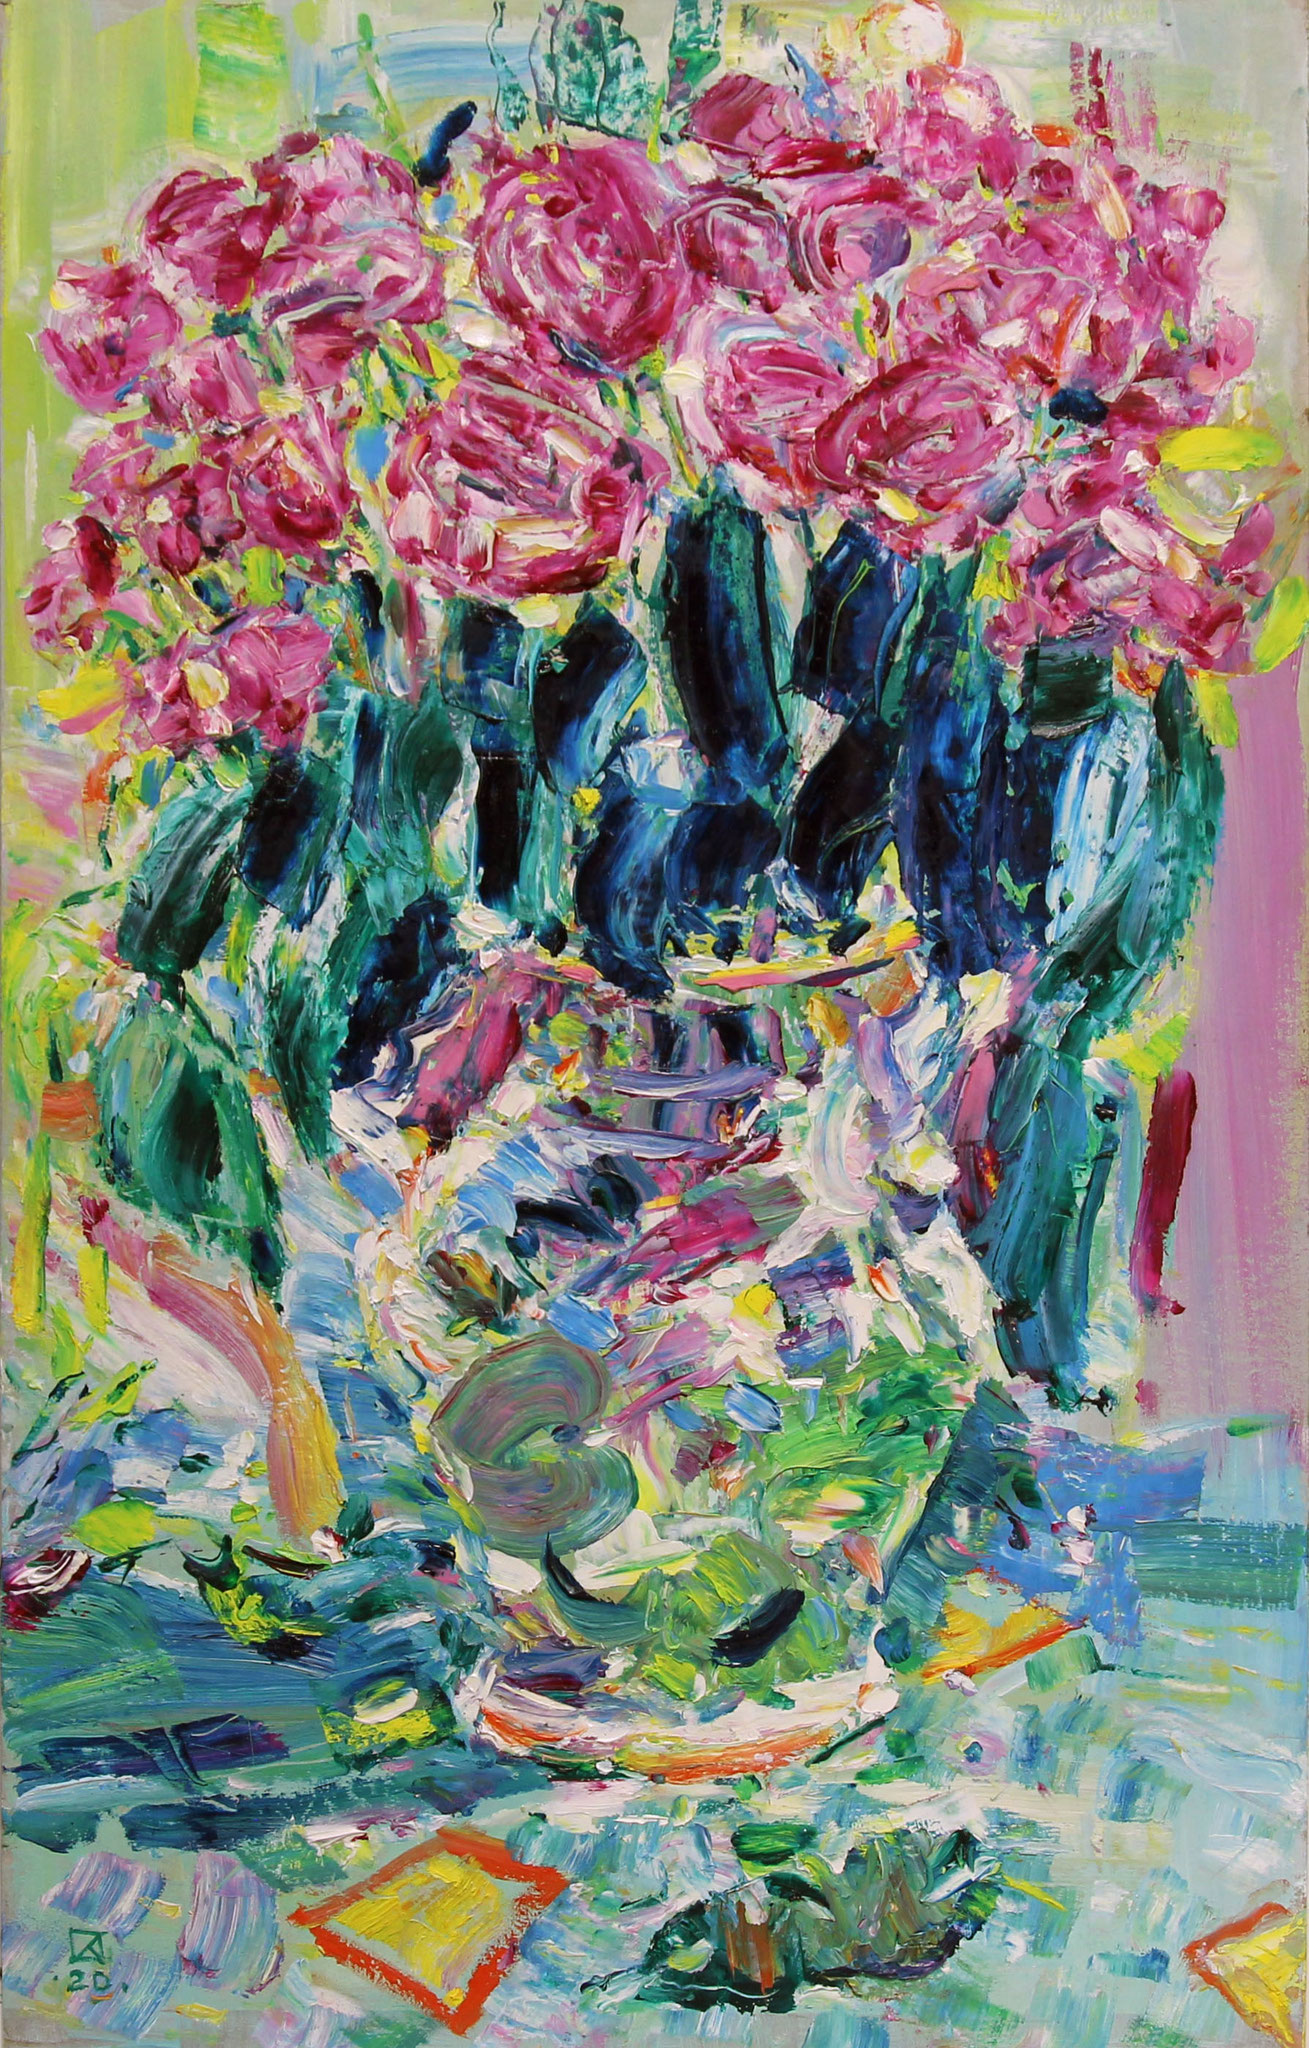 Roses in a vase. 2020. Oil on cardboard. 66 x 42